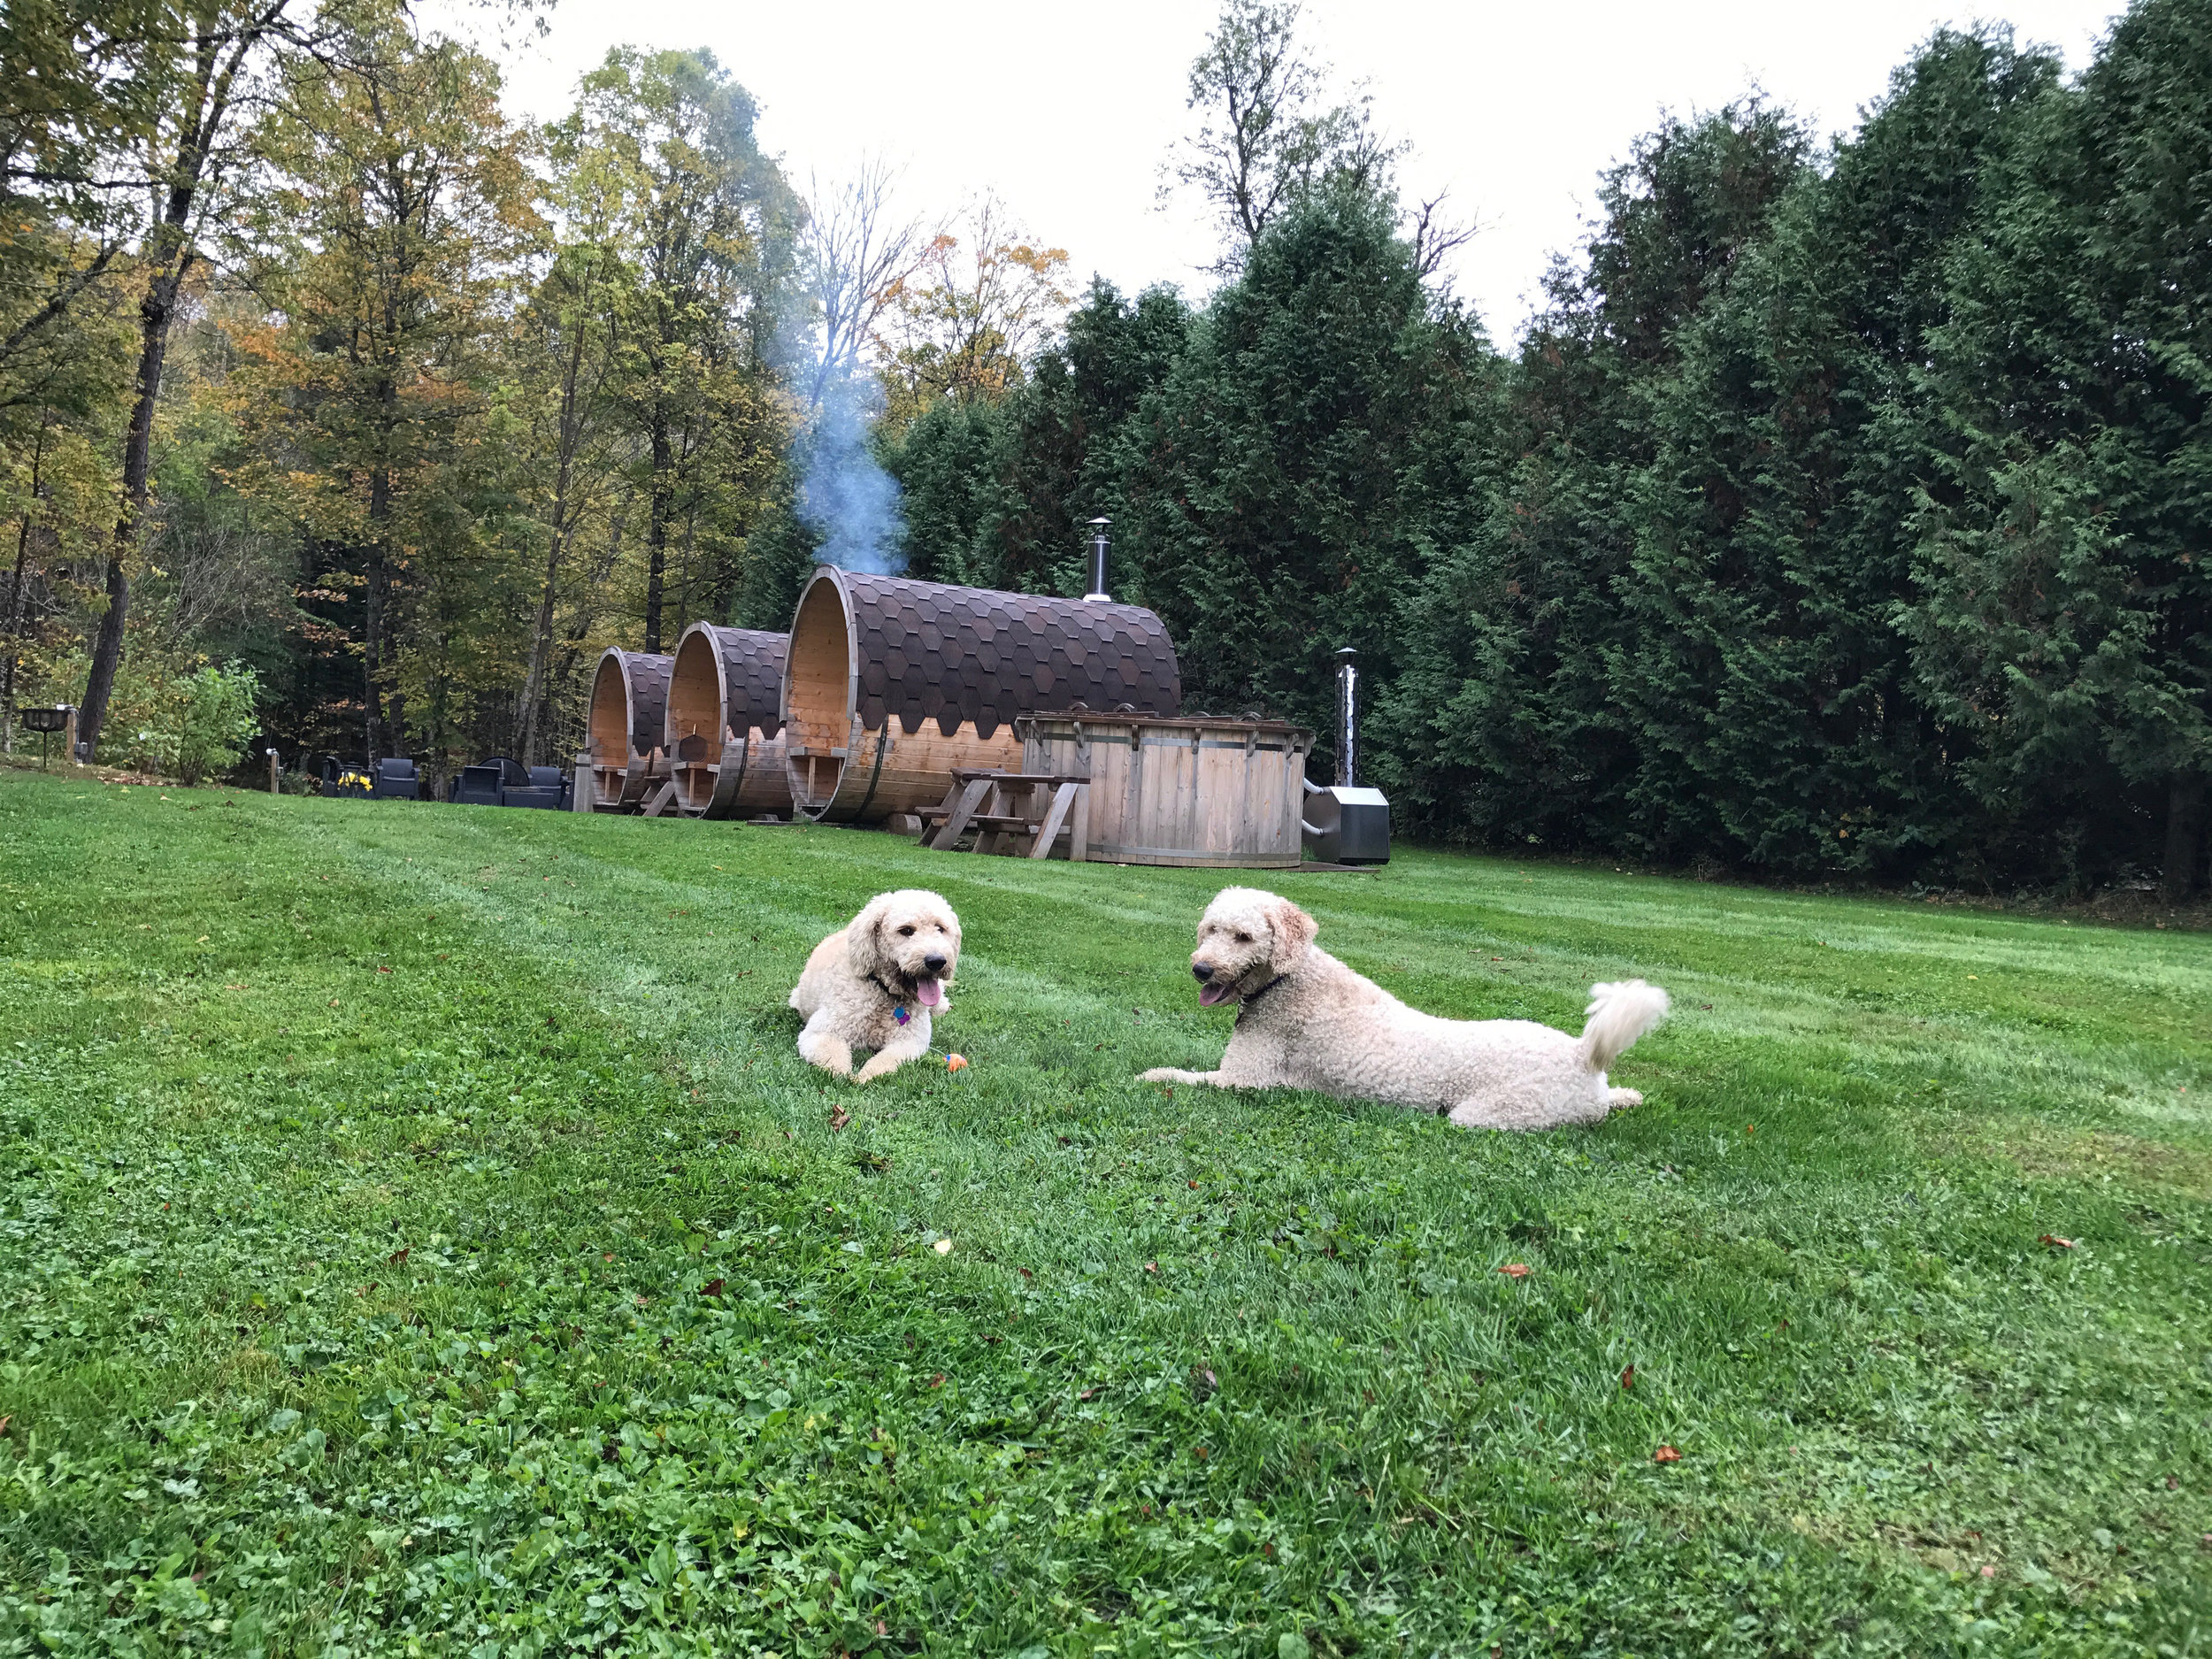 Pet Friendly   Fido and Fifi are welcome in the first floor of the lodge at WilloBurke; please ask for a pet friendly room when making your reservation. Dogs are not allowed on KT on weekends. +30 per dog